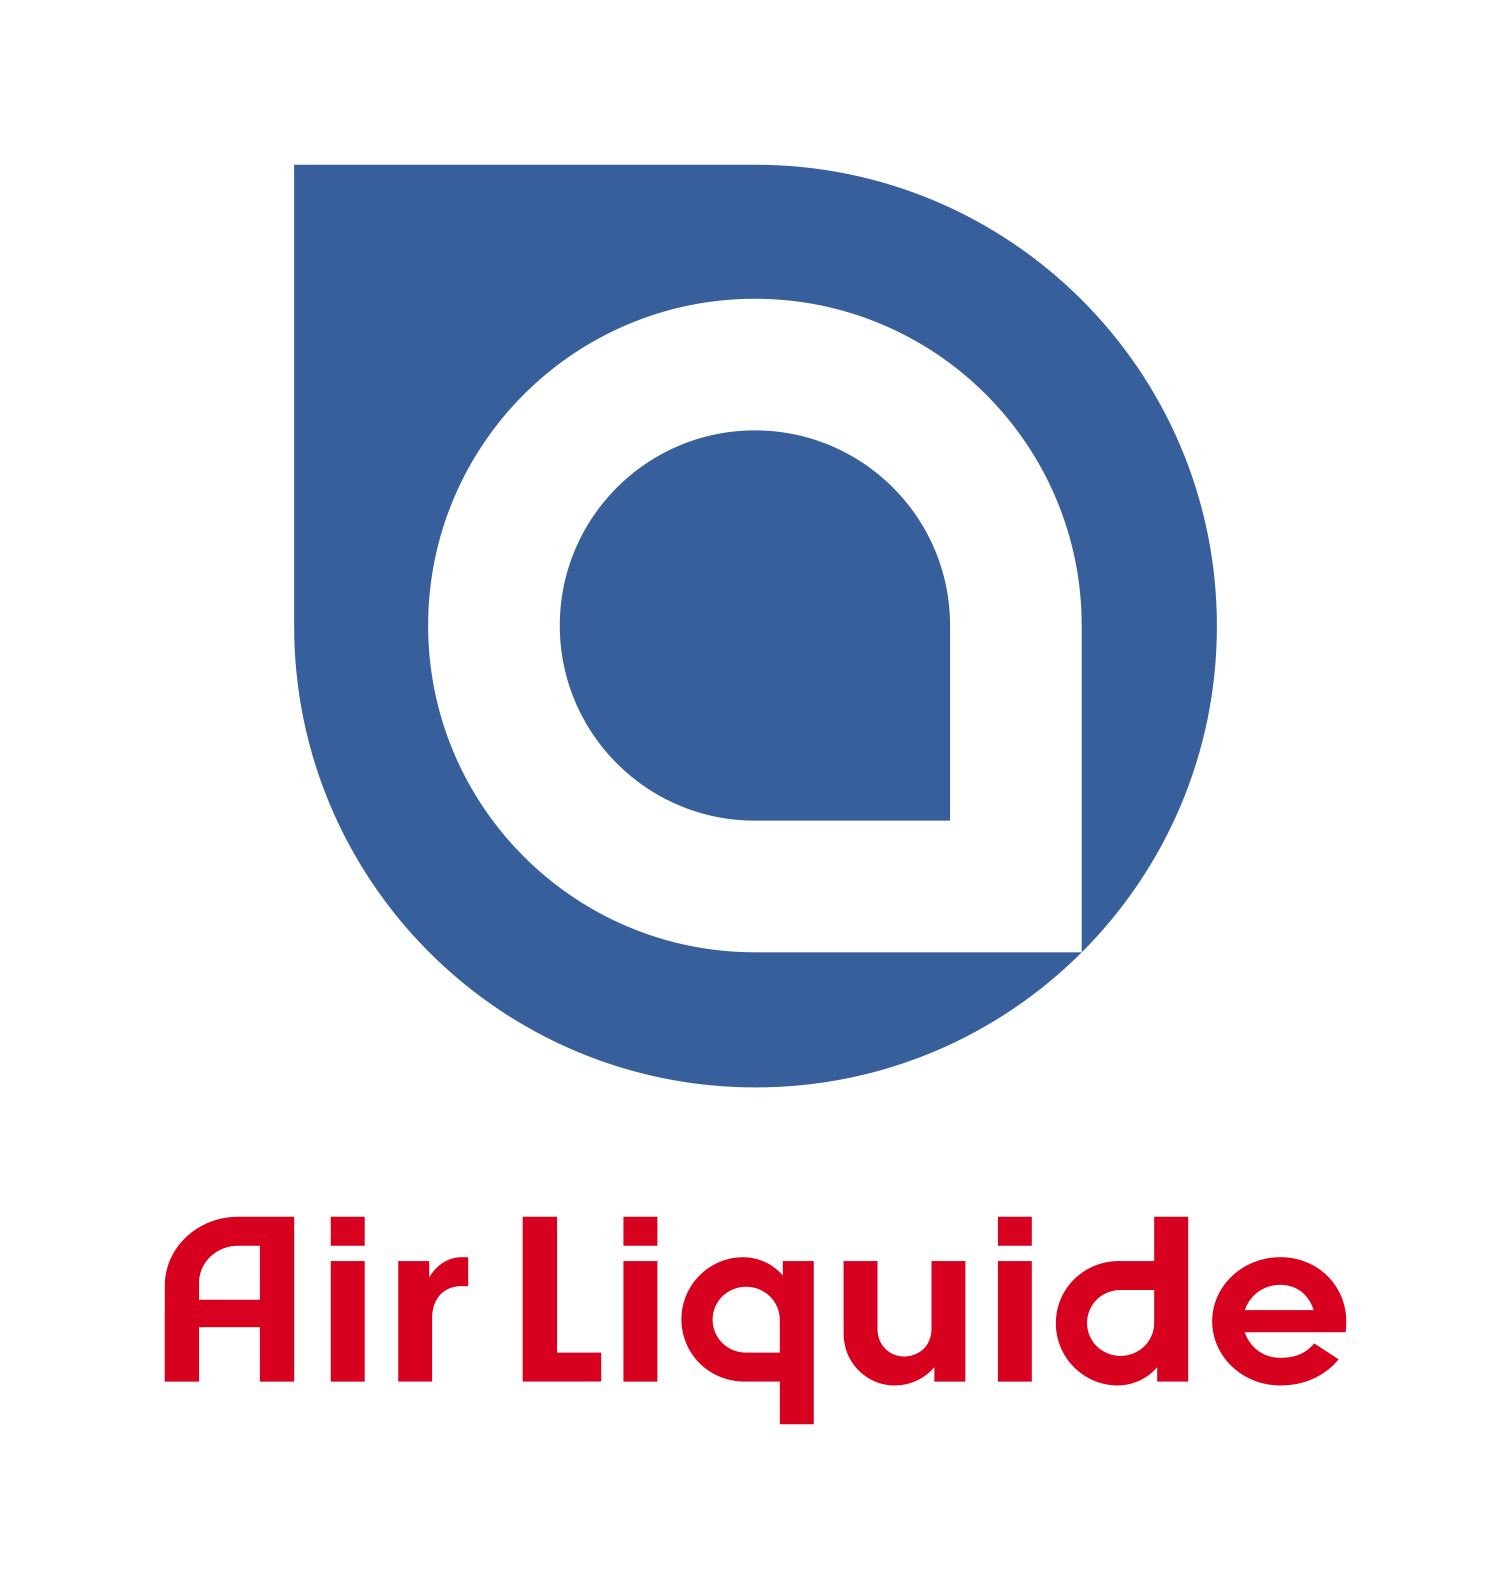 AIRLIQUIDE MEDICAL SYSTEMS S.p.A.